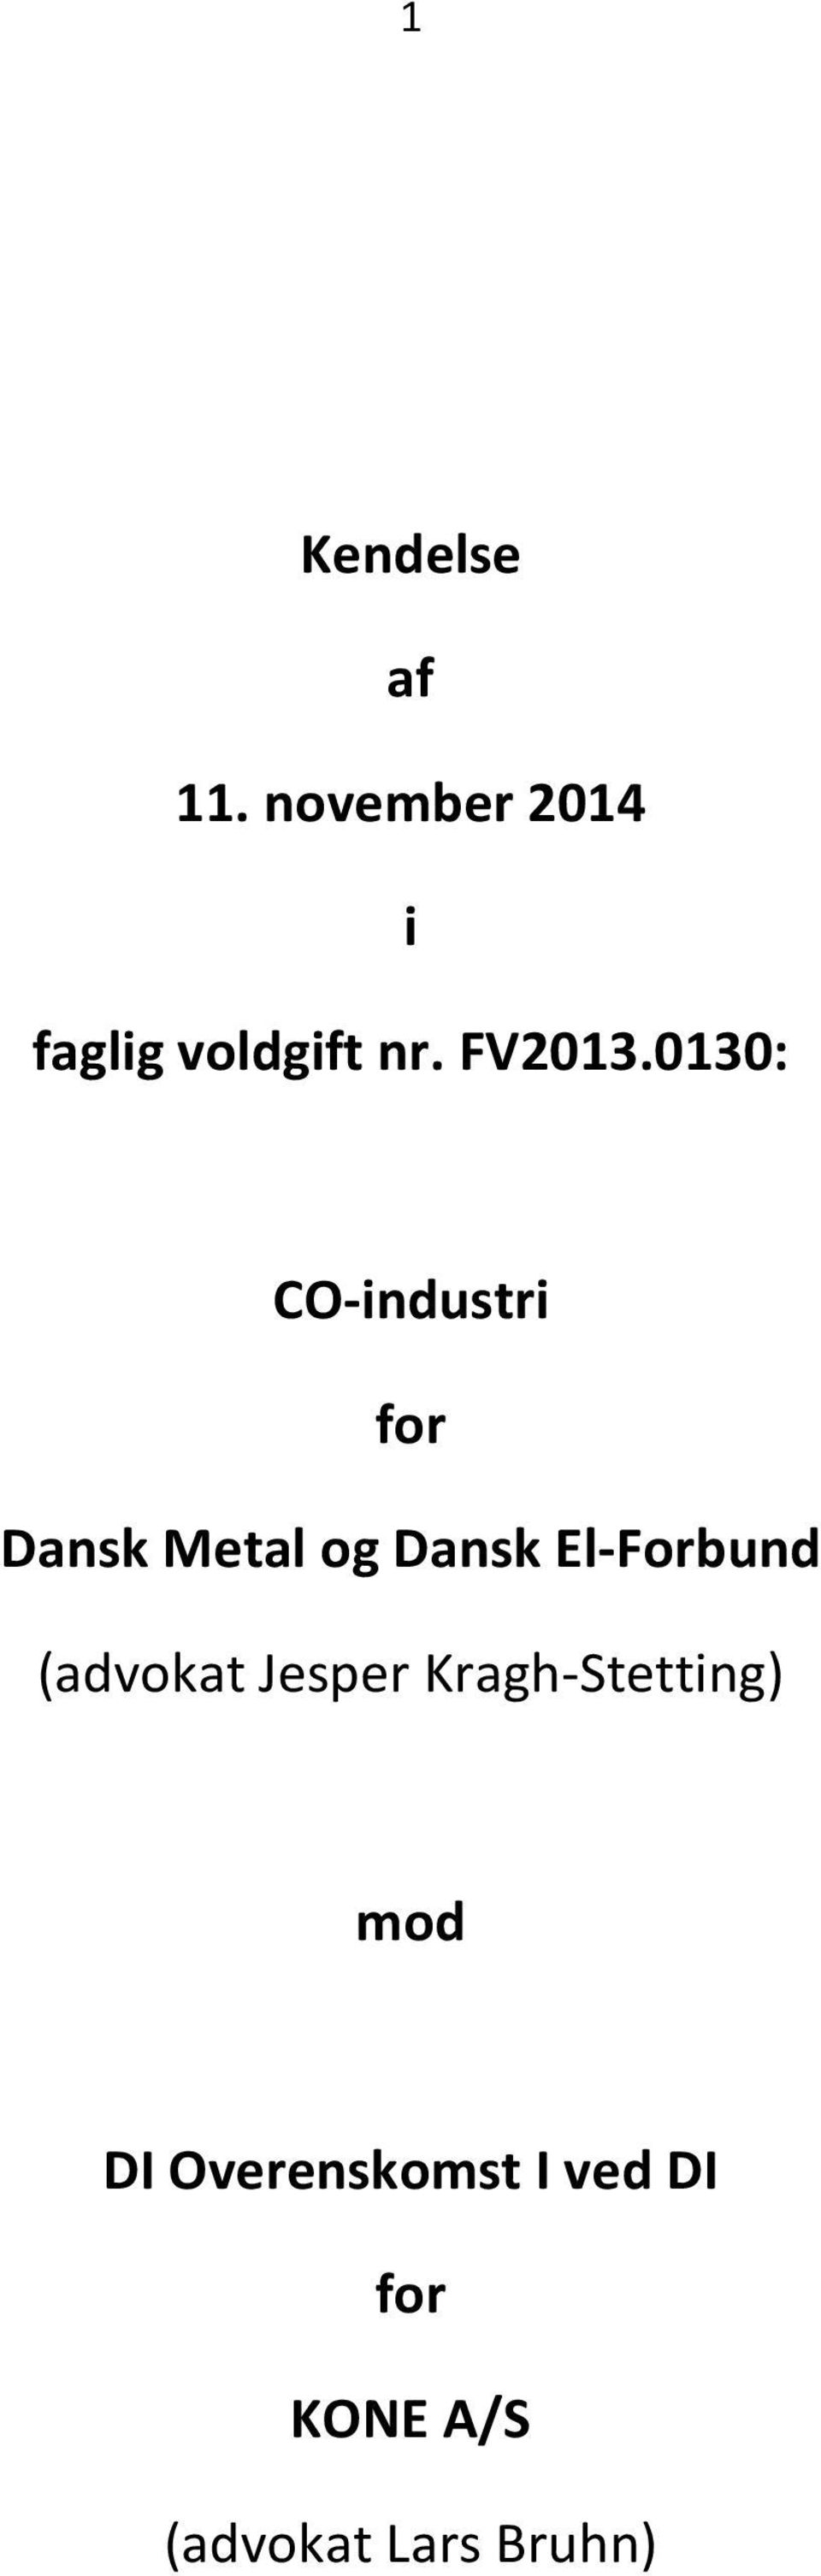 0130: CO-industri for Dansk Metal og Dansk